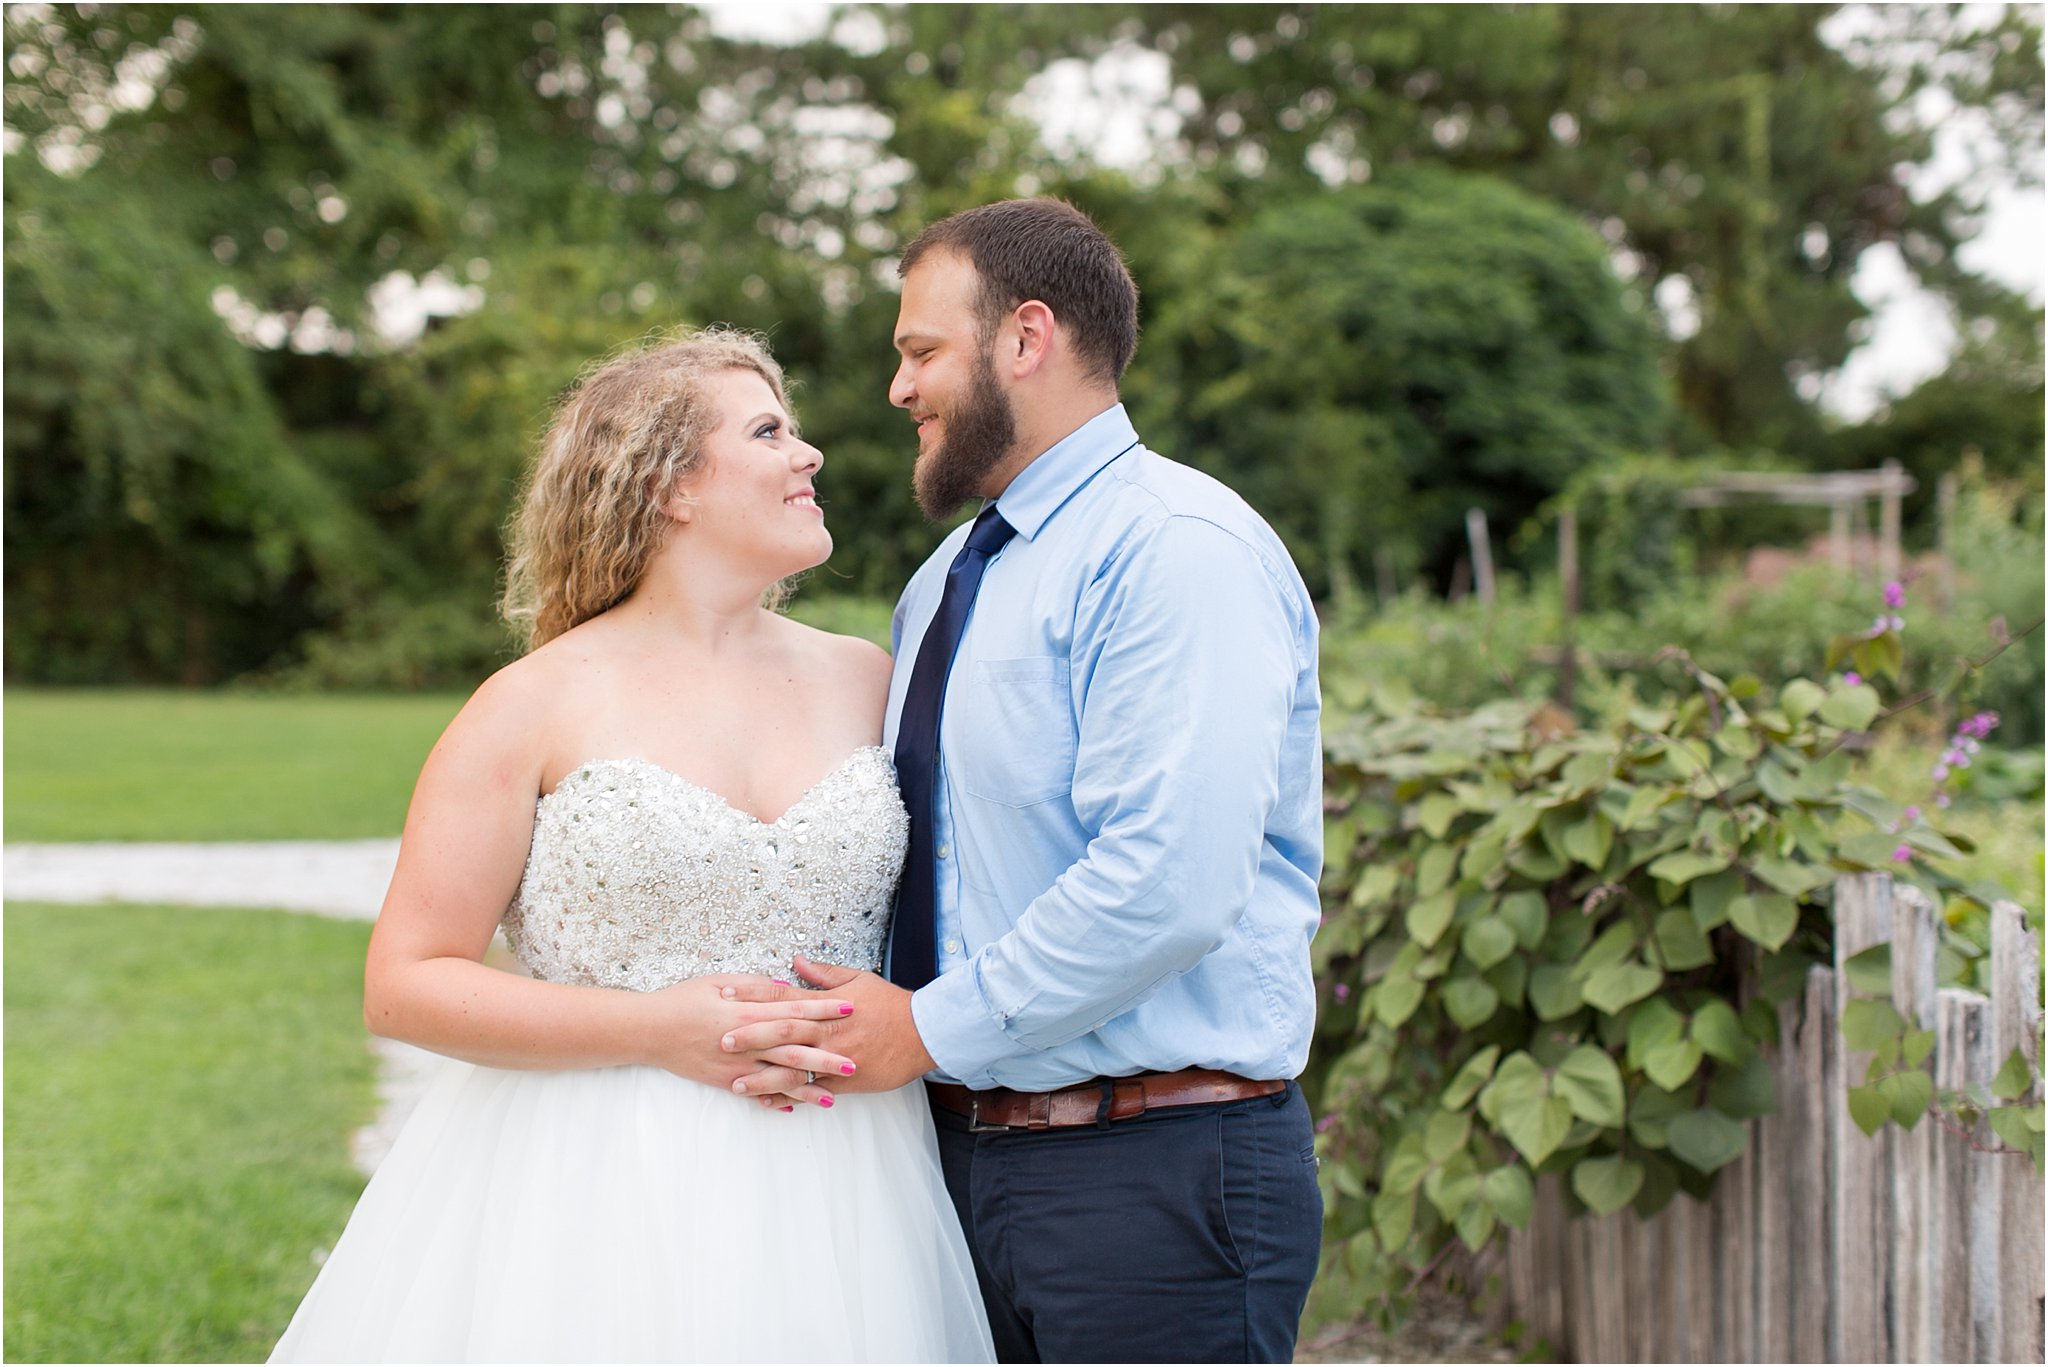 jessica_ryan_photography_virginia_virginia_beach_francis_land_house_portraits_anniversary_portraits_bride_and_groom_beloved_historical_home_wedding_2702